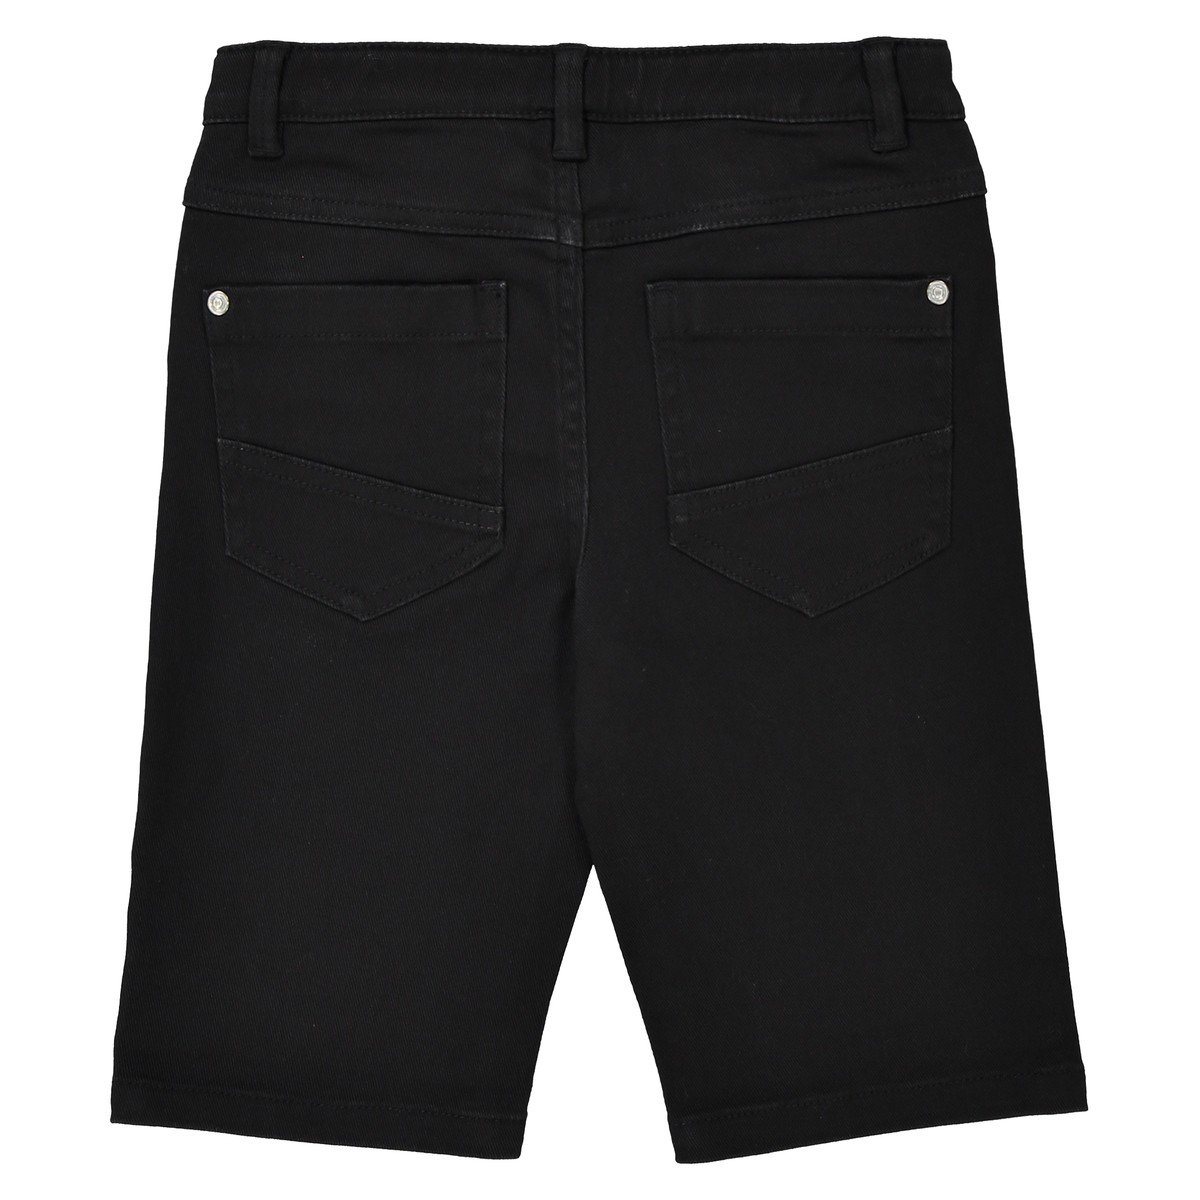 La Redoute Collections Big Boys 5-Pocket Bermuda Shorts 3-12 Years Black Size 4 Years 40 in.